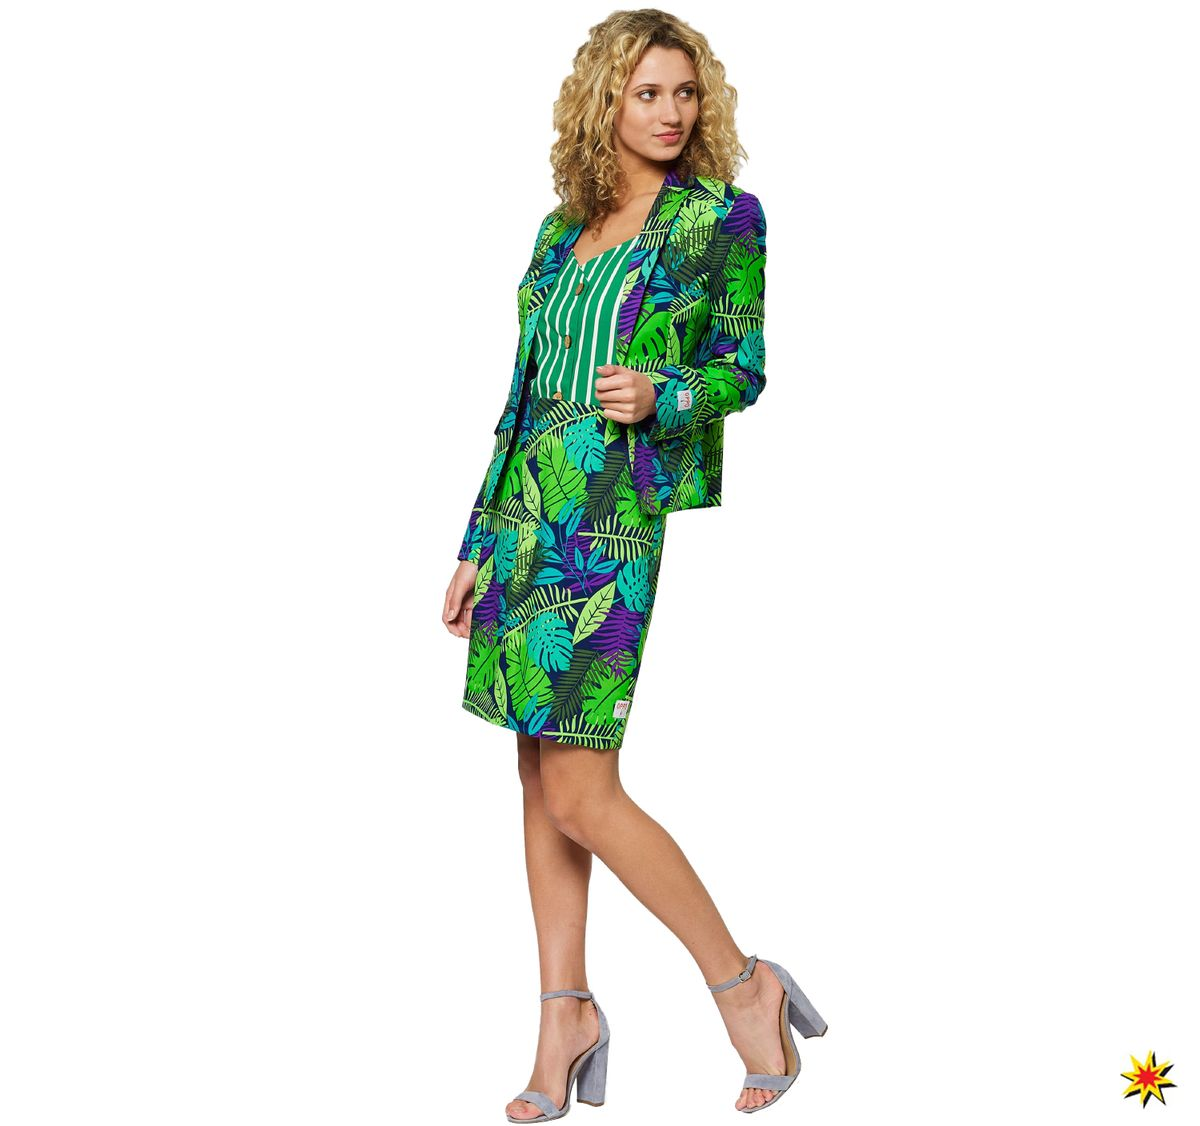 Damen Opposuit Jungle Jane Blazer Mit Rock Grosse 34